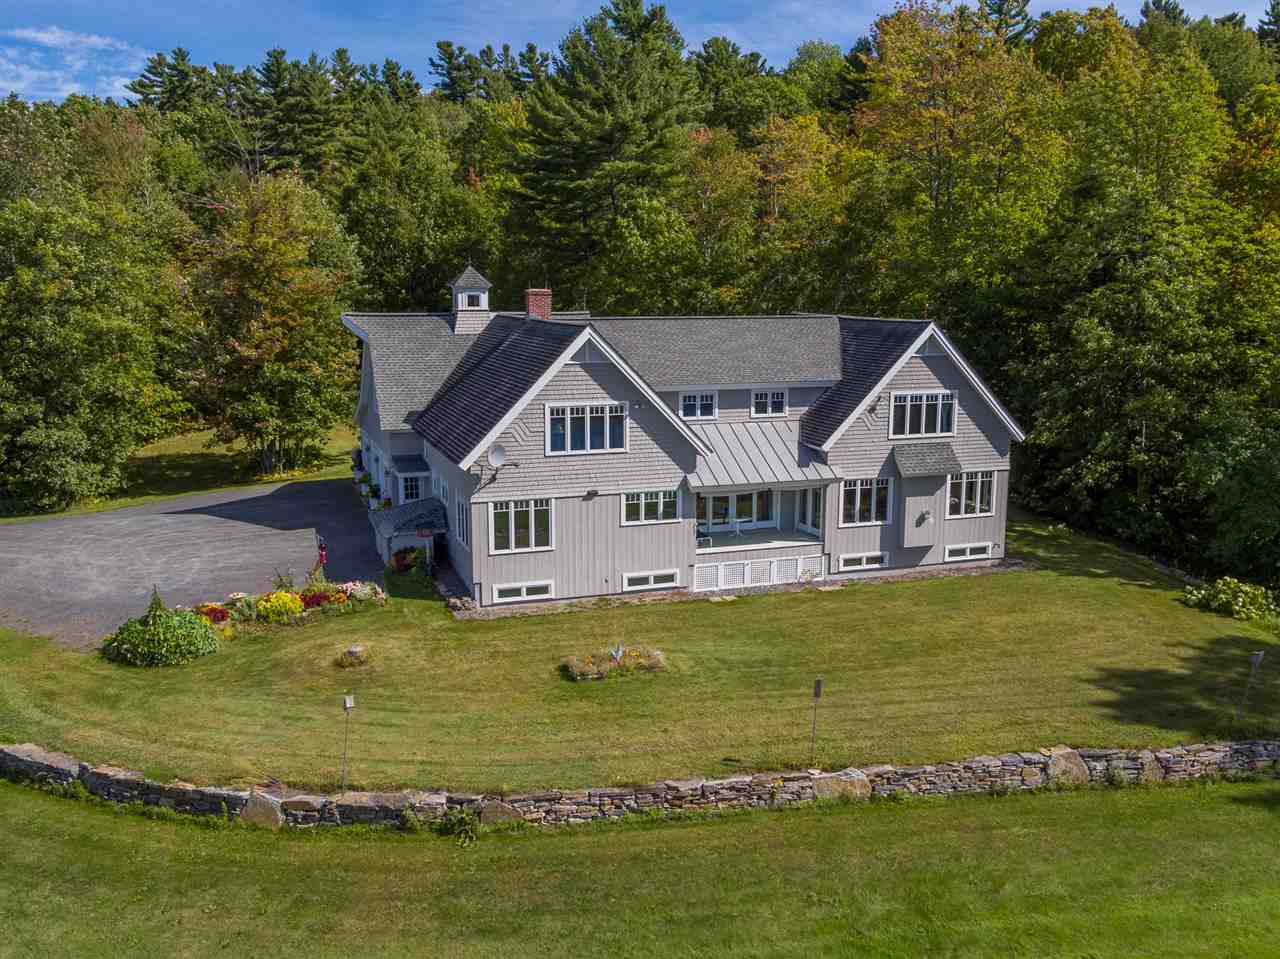 MLS 4745323: 401 Leavitt Hill Road, Cornish NH